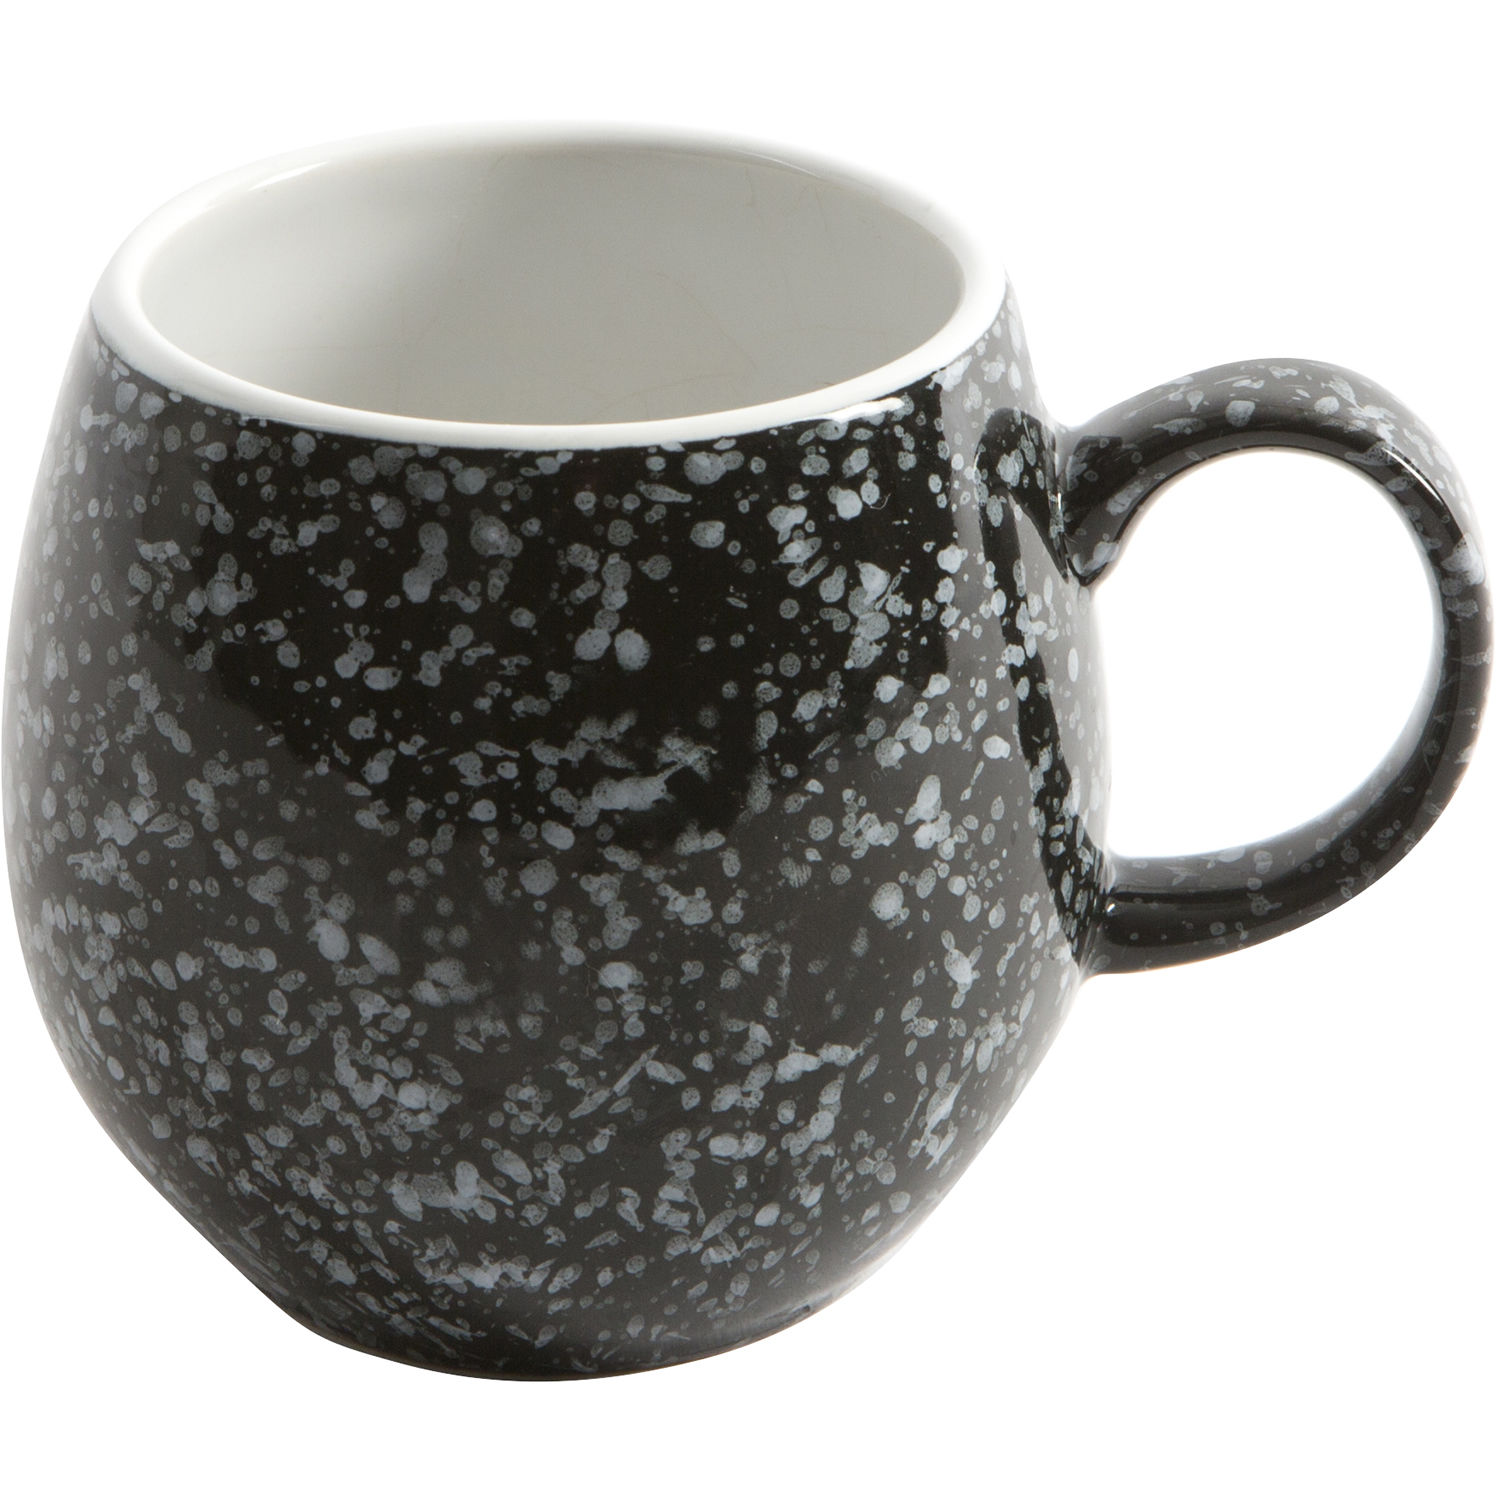 London Pottery Pebble Teapots Mug Gloss Flecked Black